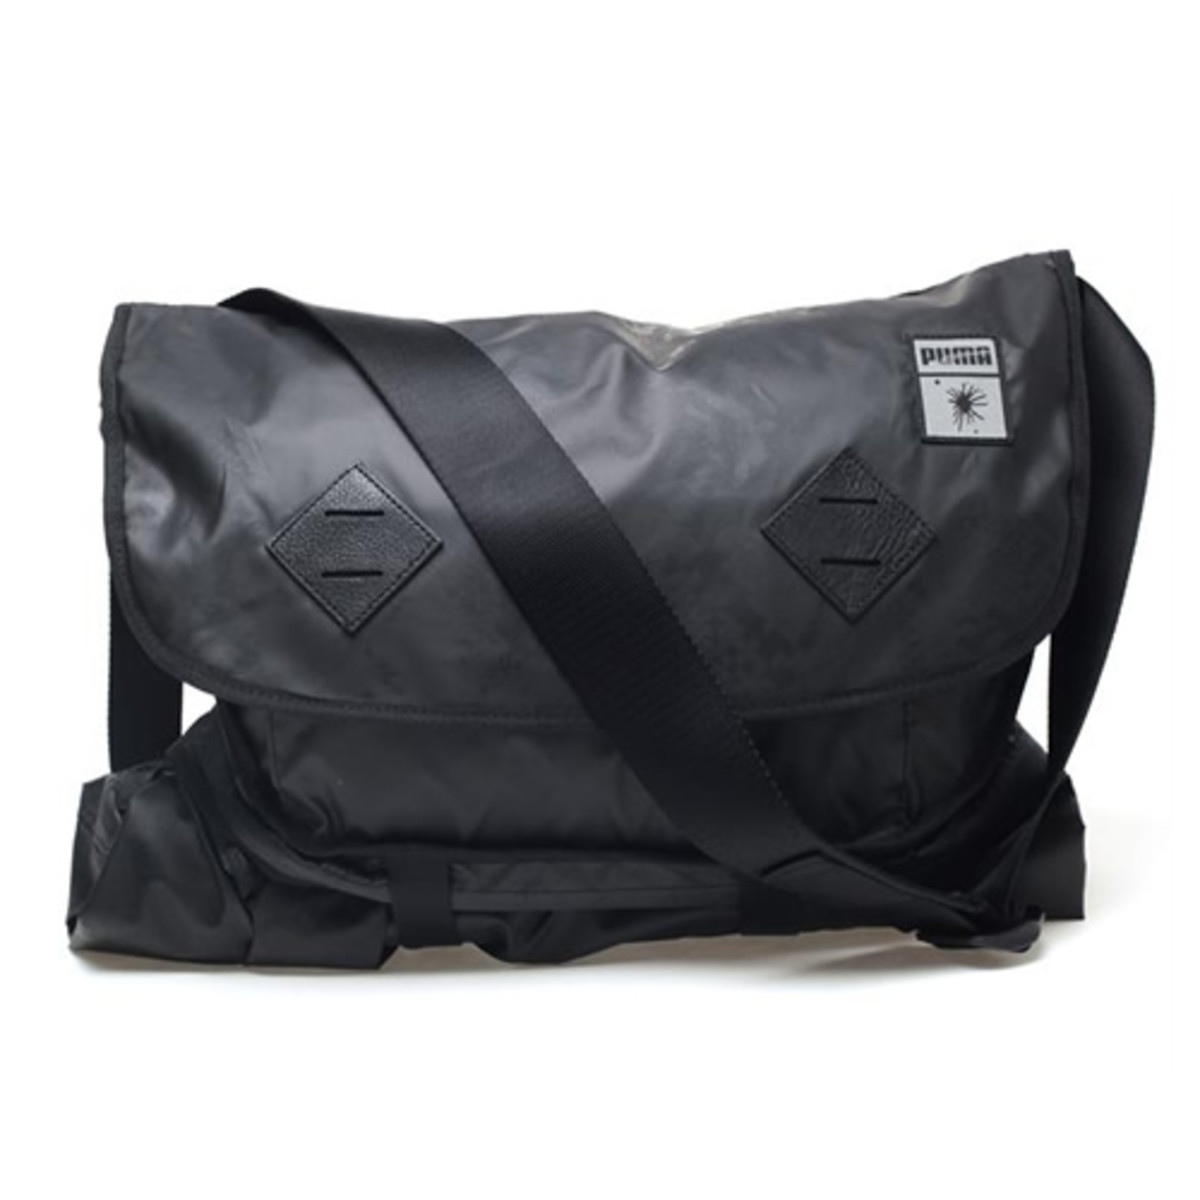 146c9f5b2f Puma x MiharaYasuhiro s Utility Bag offers up the best of both worlds when  you need it. The bag can be used as a messenger or you can convert it to an  ...